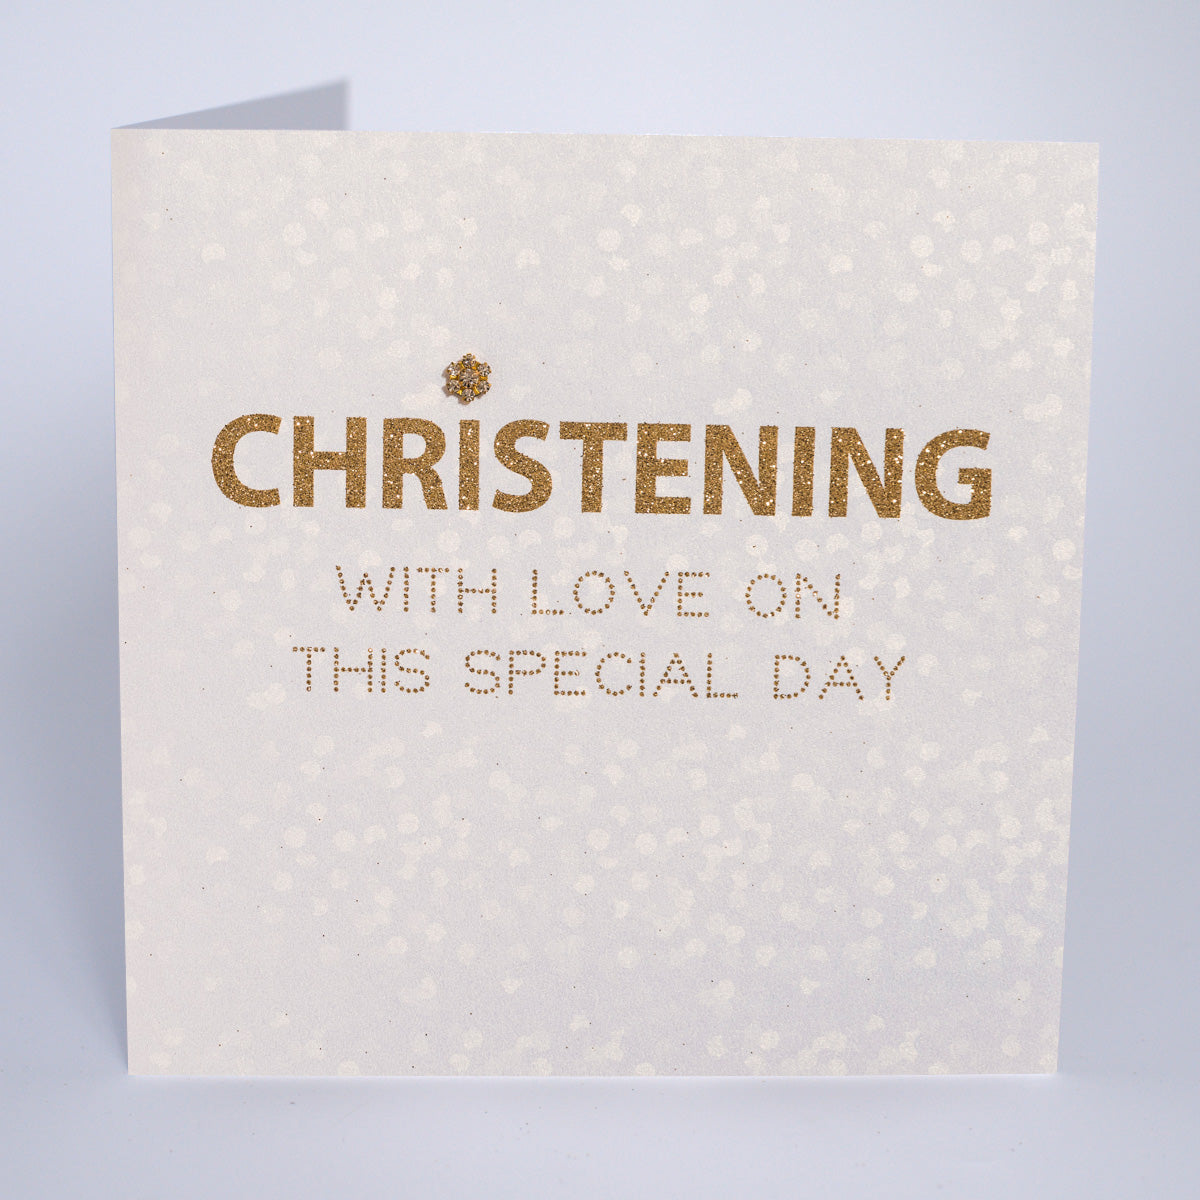 Christening - With Love On This Special Day